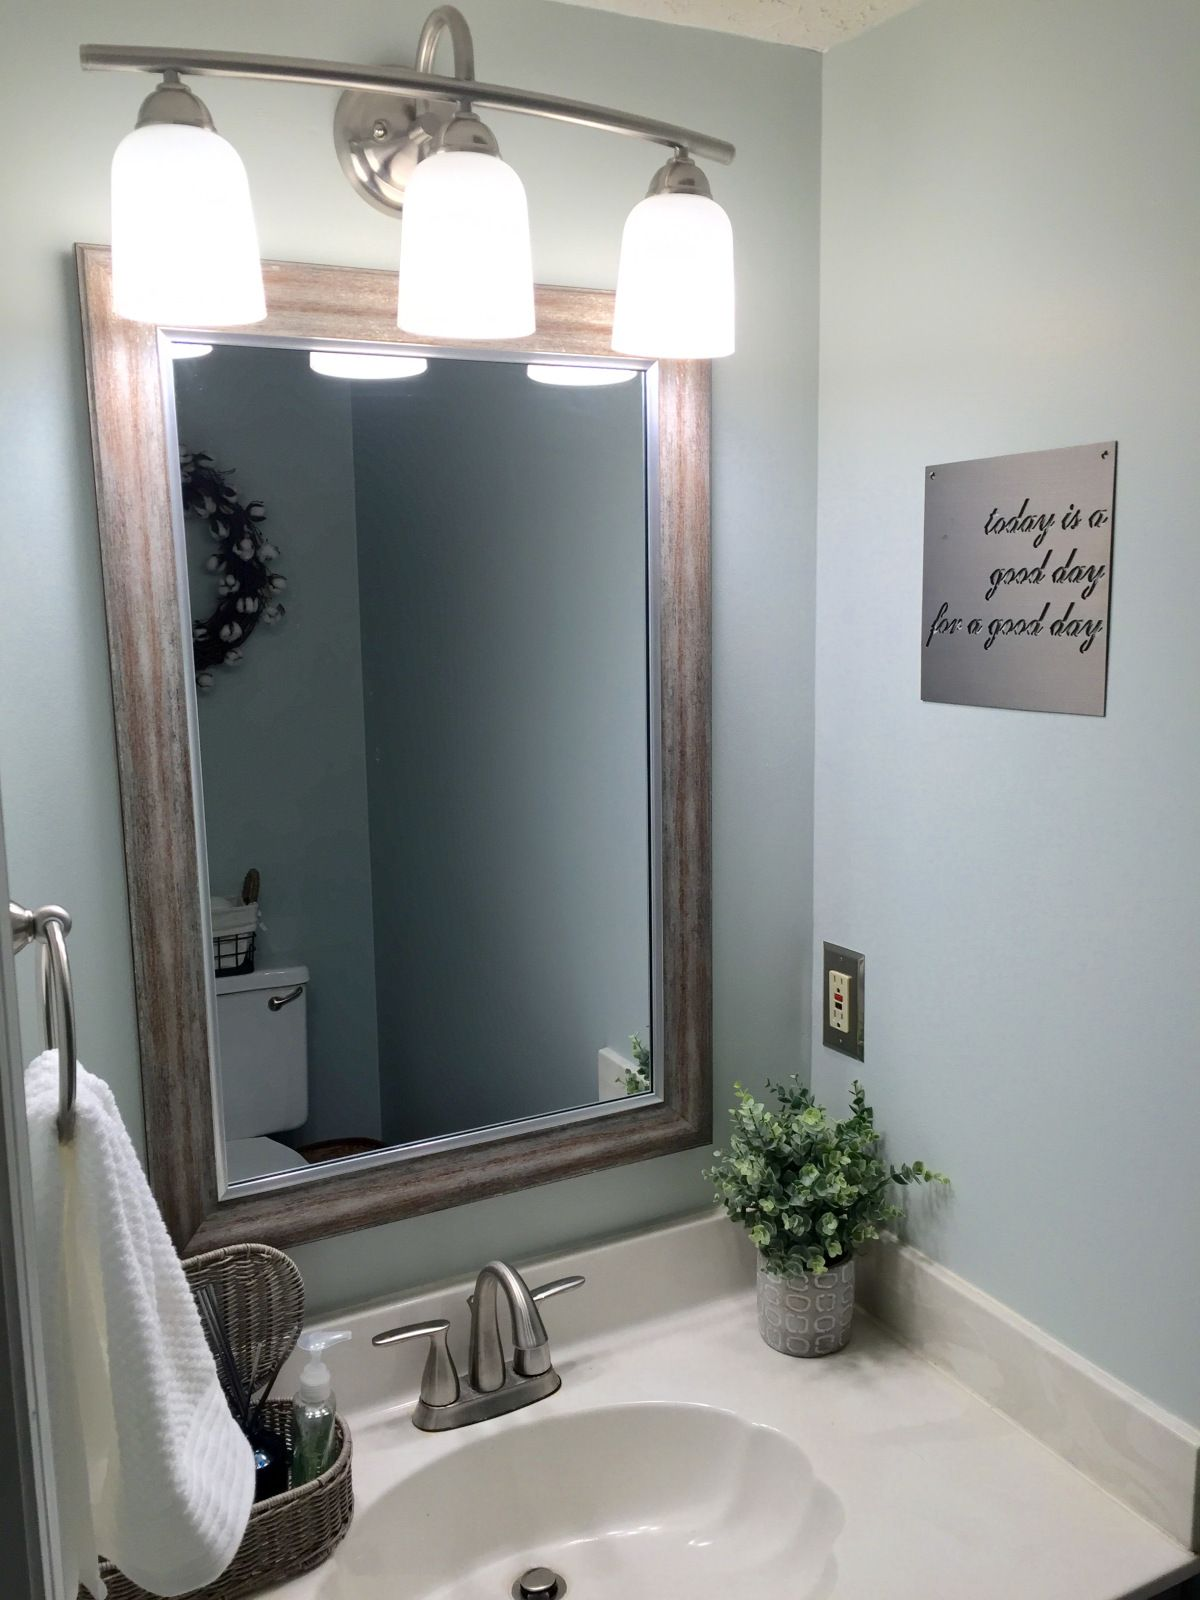 Farmhouse Small Half Bath Renovation Fixer Upper Bathroom In Sherwin Williams Sea Salt And Dorian